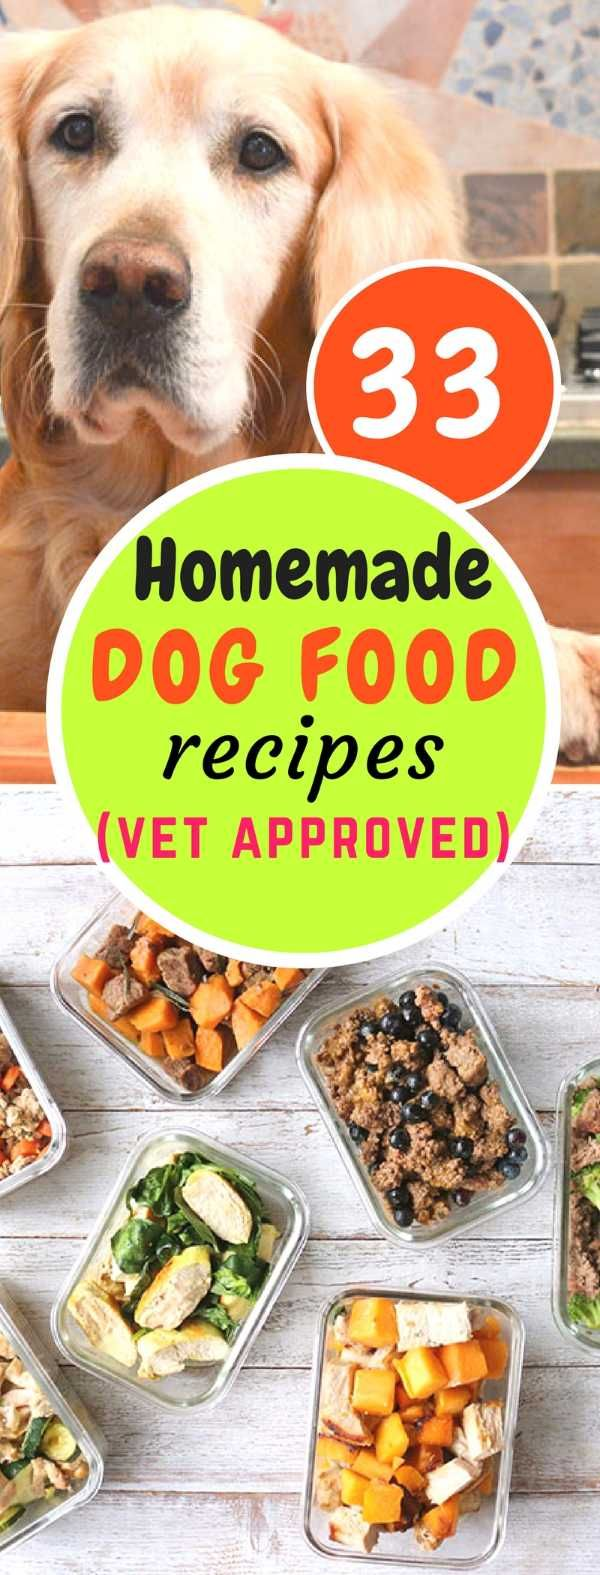 33 Best Homemade Dog Food Recipes That Are Vet Approved Raw Dog Food Recipes Dog Food Recipes Healthy Dog Food Recipes